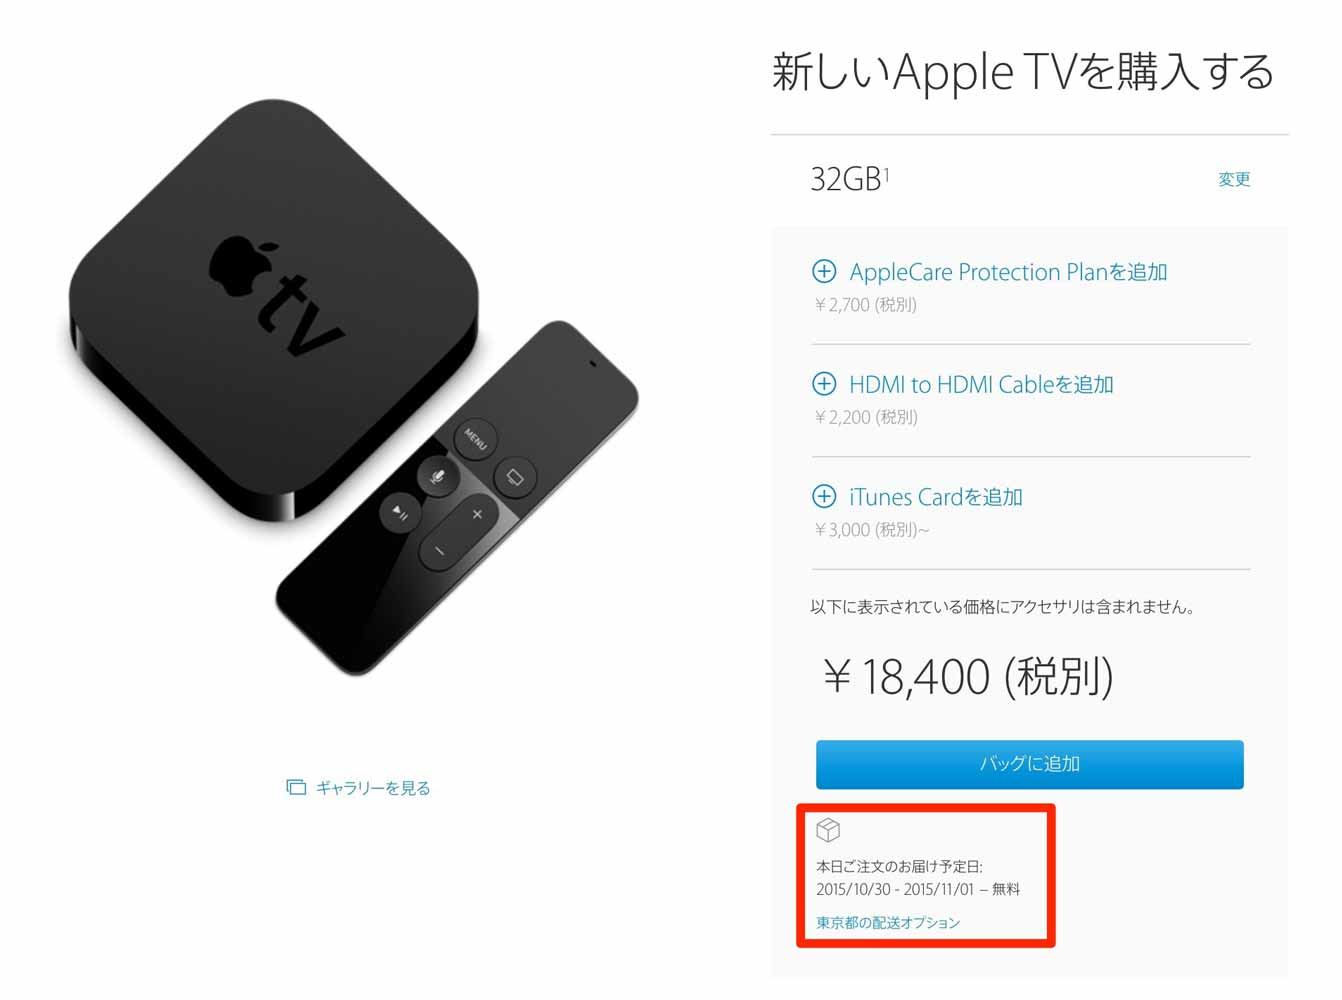 Applestoreappletv4gn